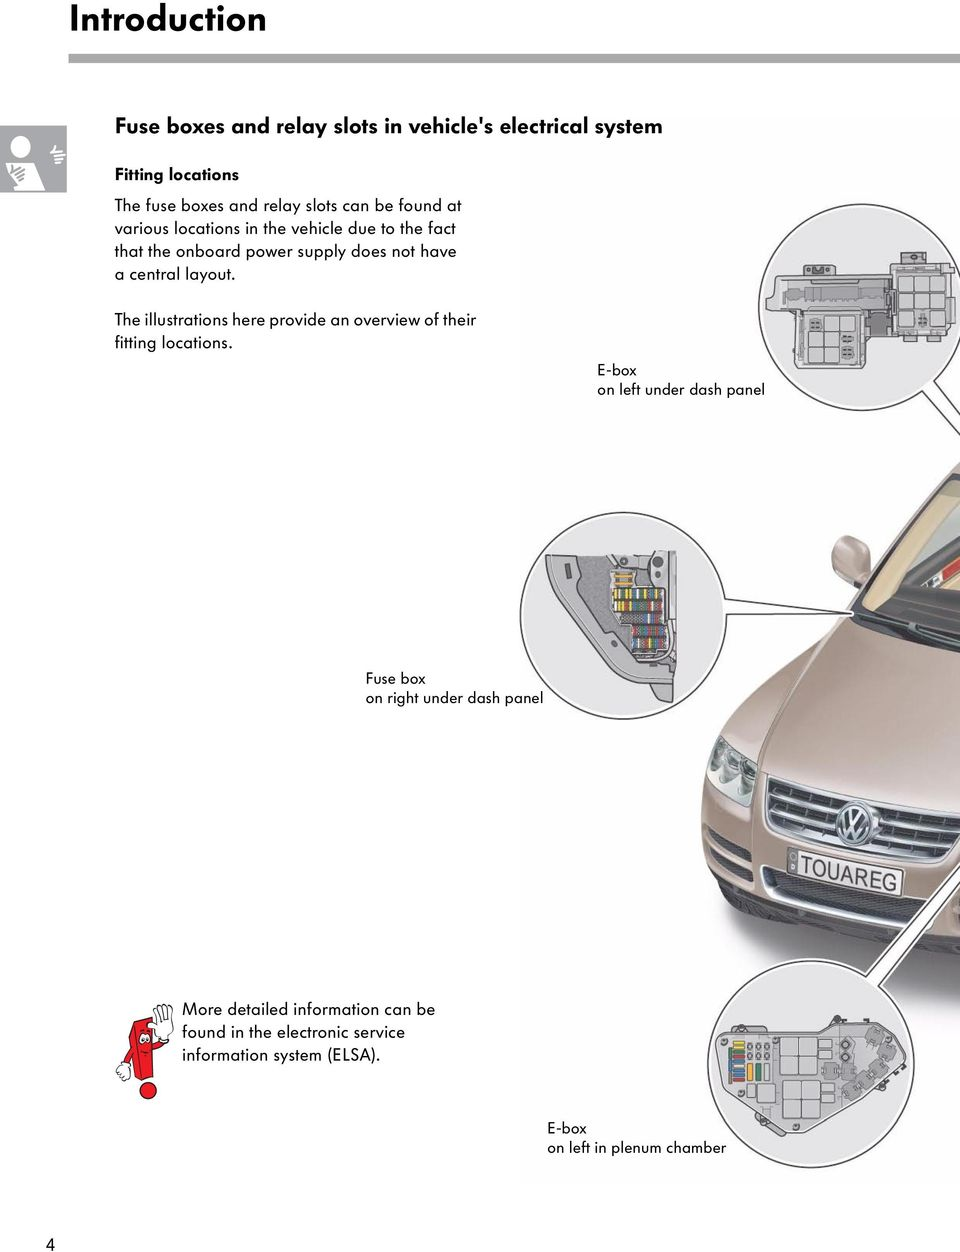 The Touareg Electrical System Pdf D5 Fuse Box Location Illustrations Here Provide An Overview Of Their Fitting Locations